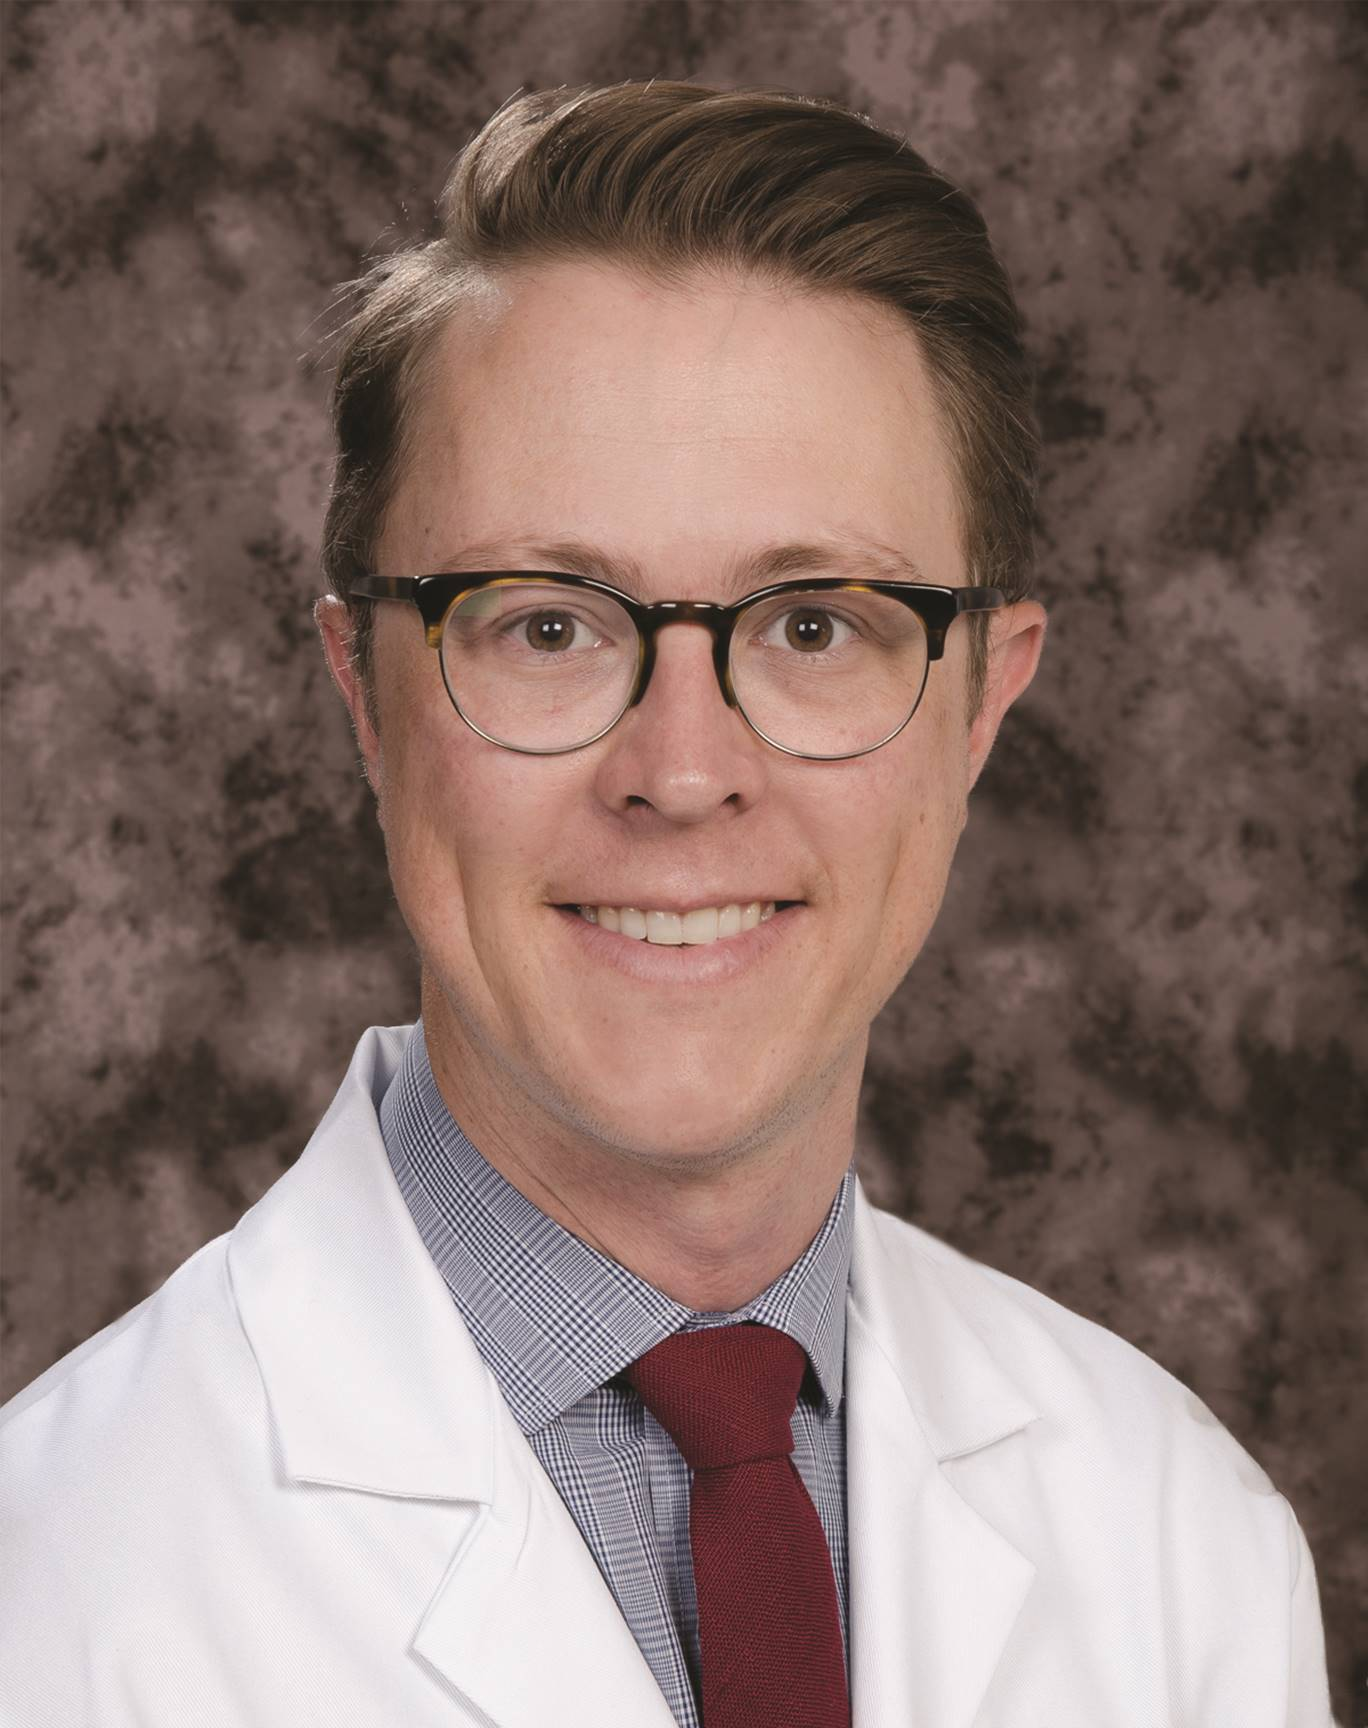 Radiation Oncologist Provides Cancer Care